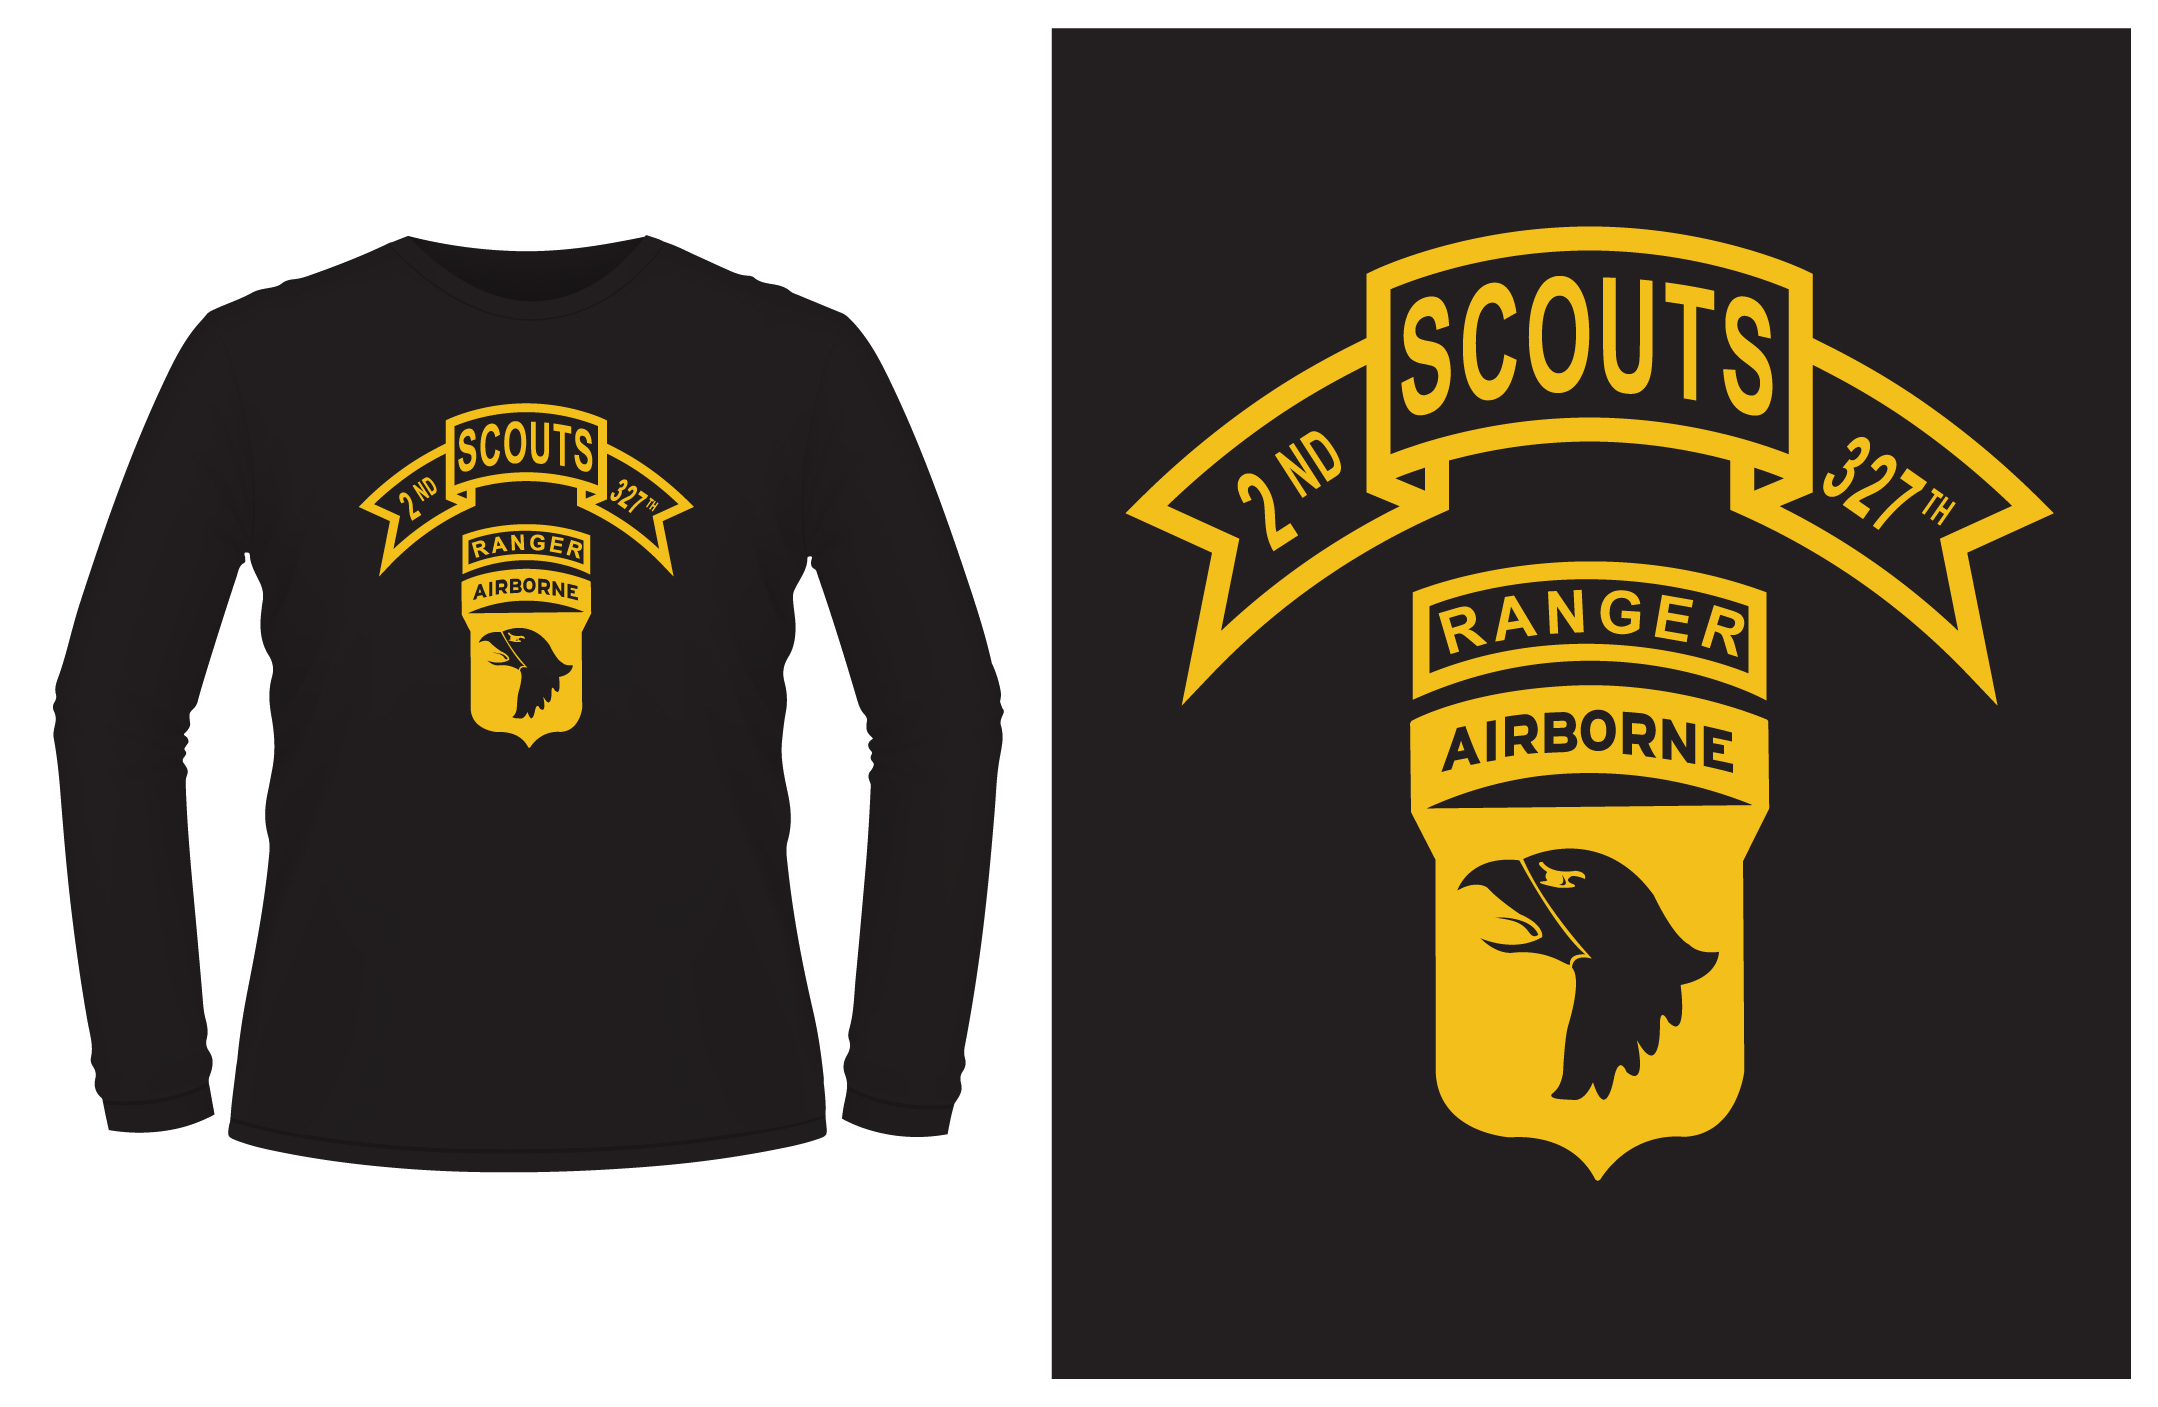 327th SCOUTS-03